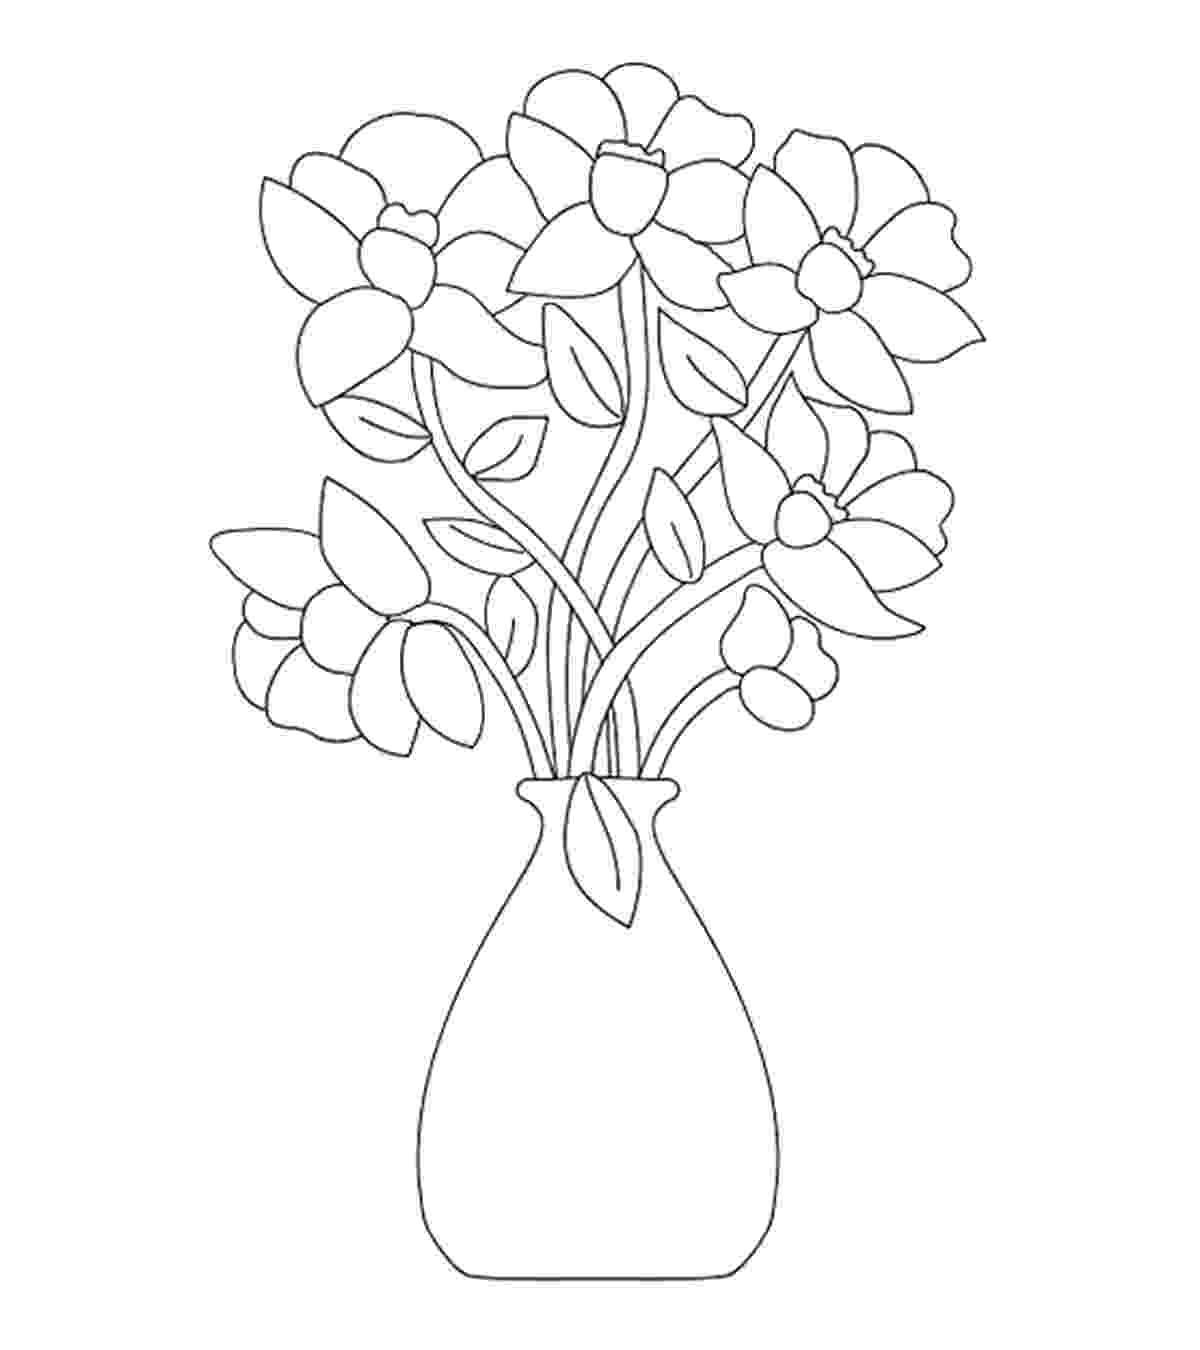 coloring pages for adults to print flowers flowers coloring pages momjunction for print pages coloring adults flowers to